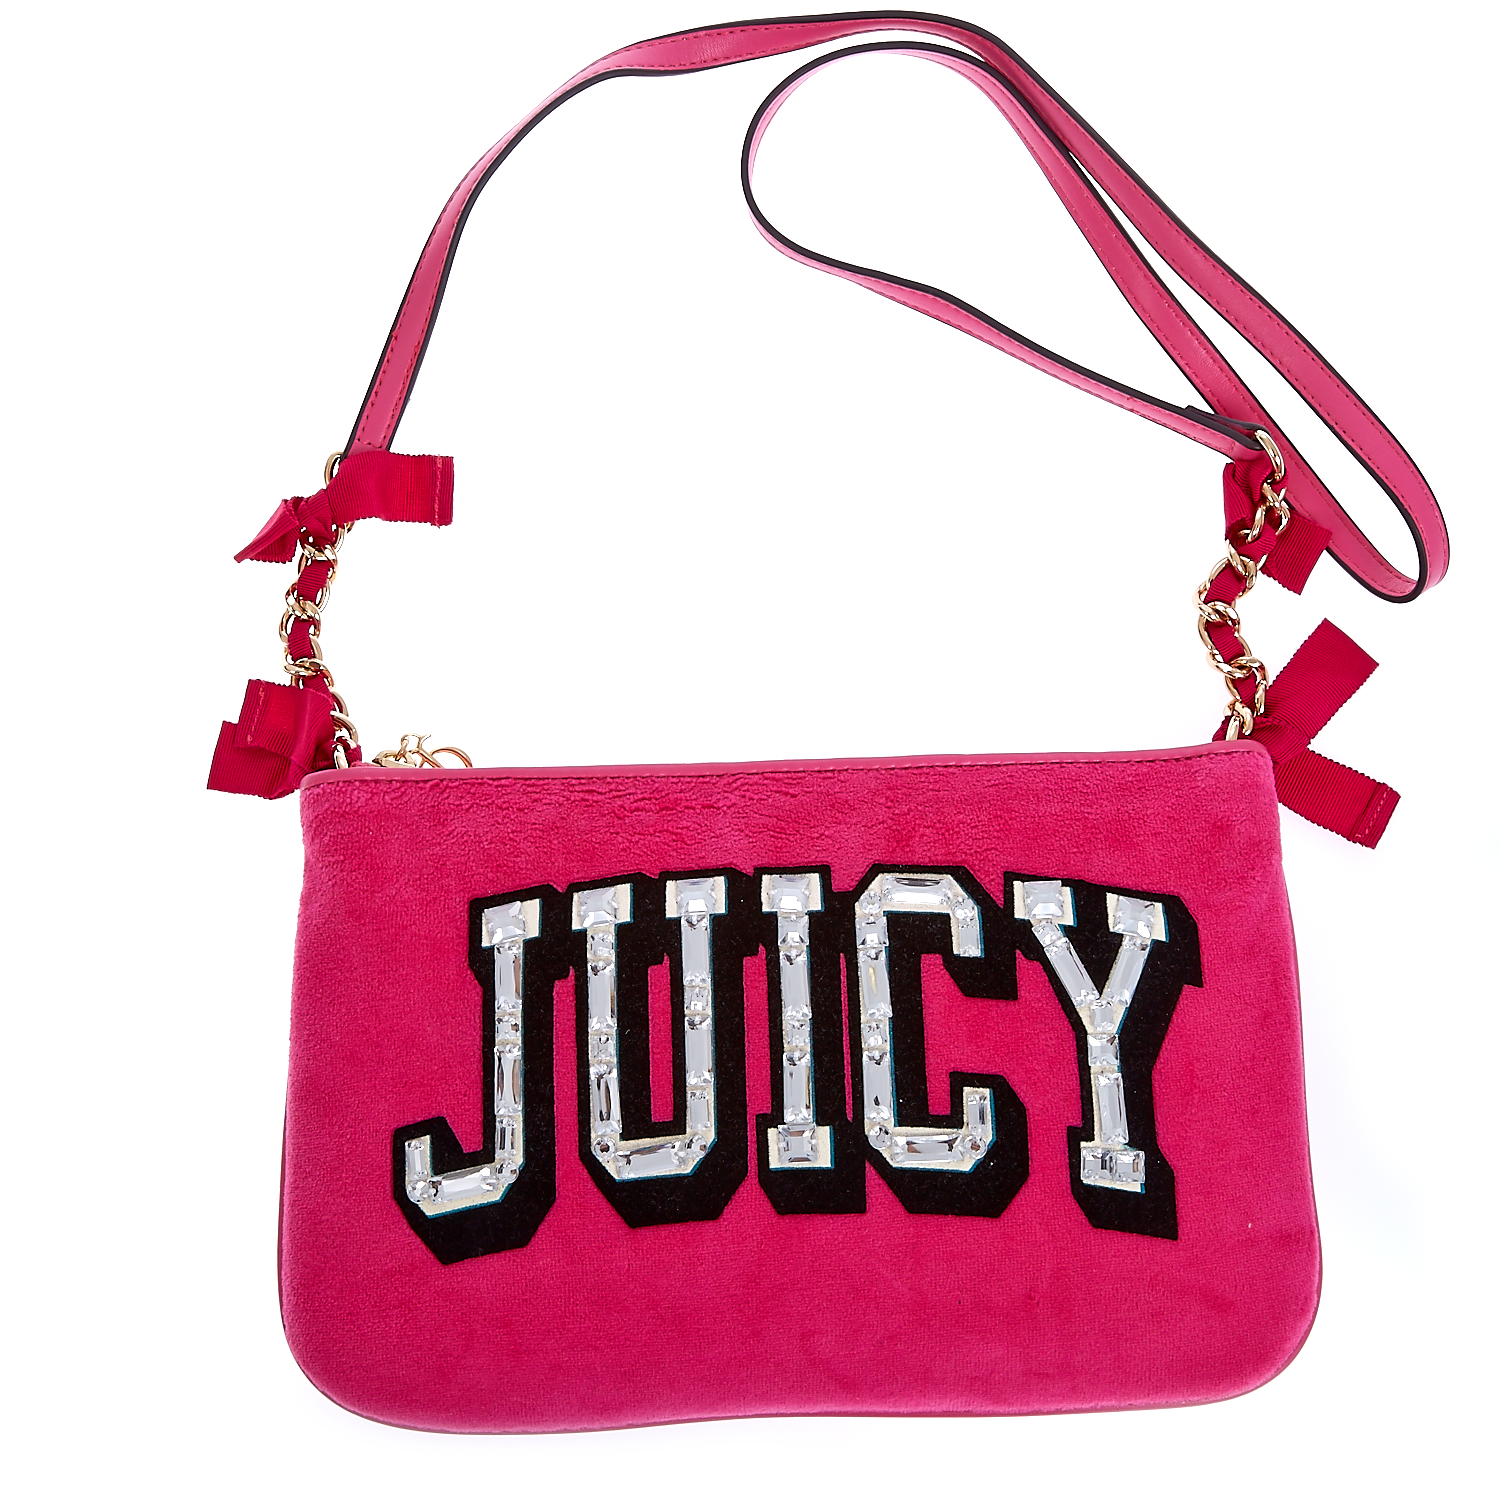 JUICY COUTURE - Τσαντάκι Juicy Couture φούξια γυναικεία αξεσουάρ τσάντες σακίδια ωμου